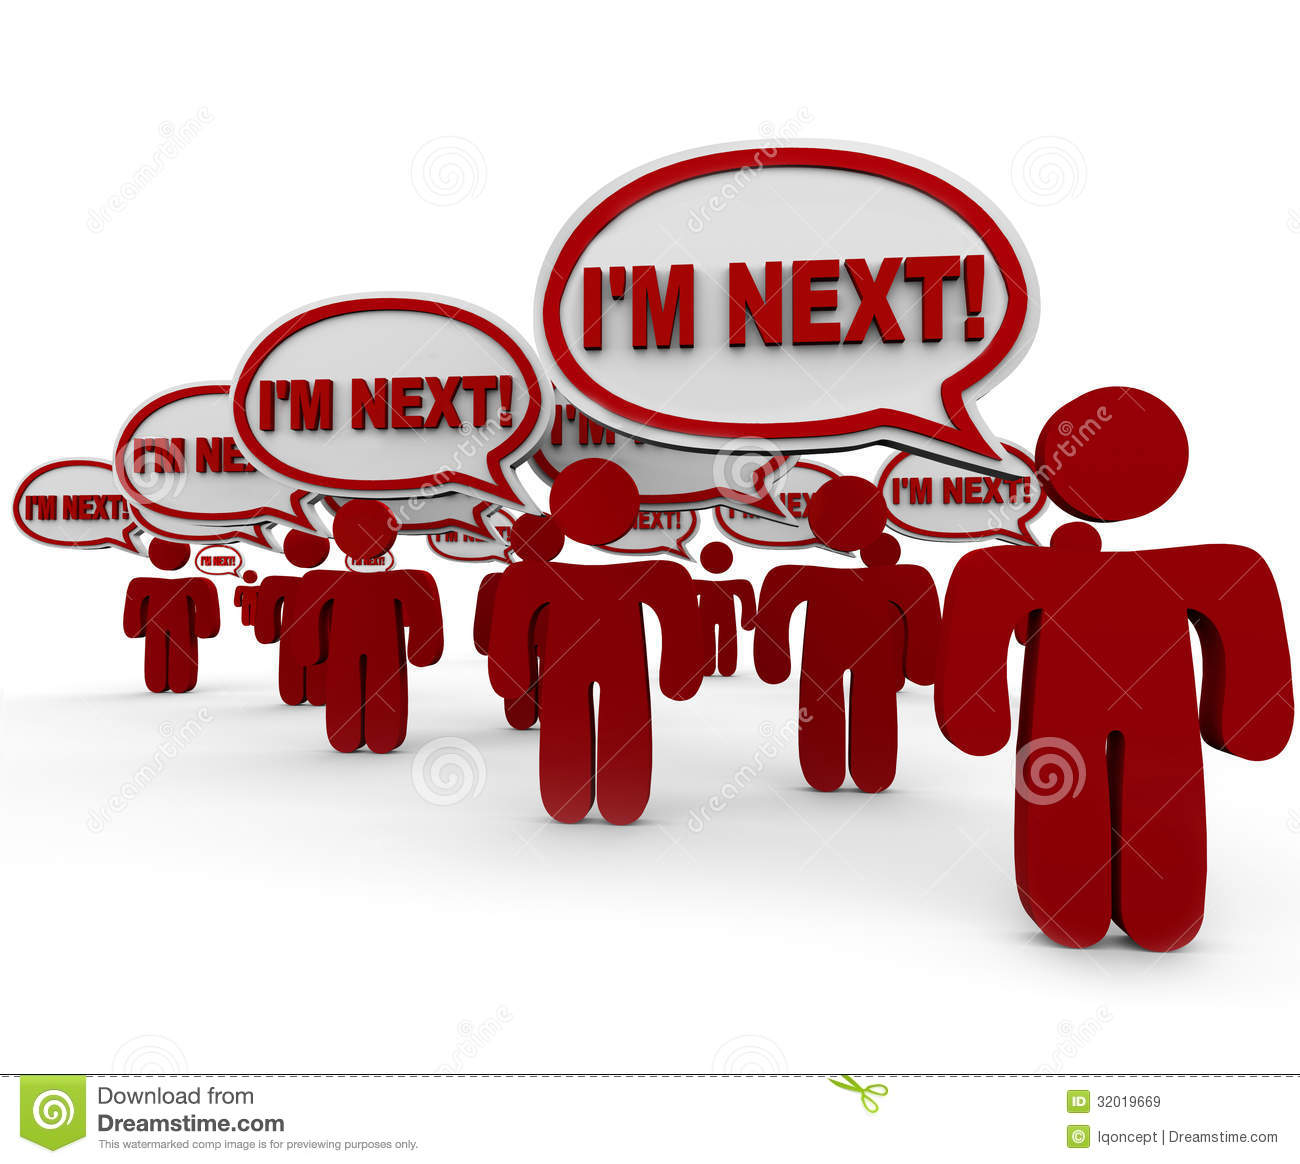 I m Next People Customers Waiting in Line Service Support